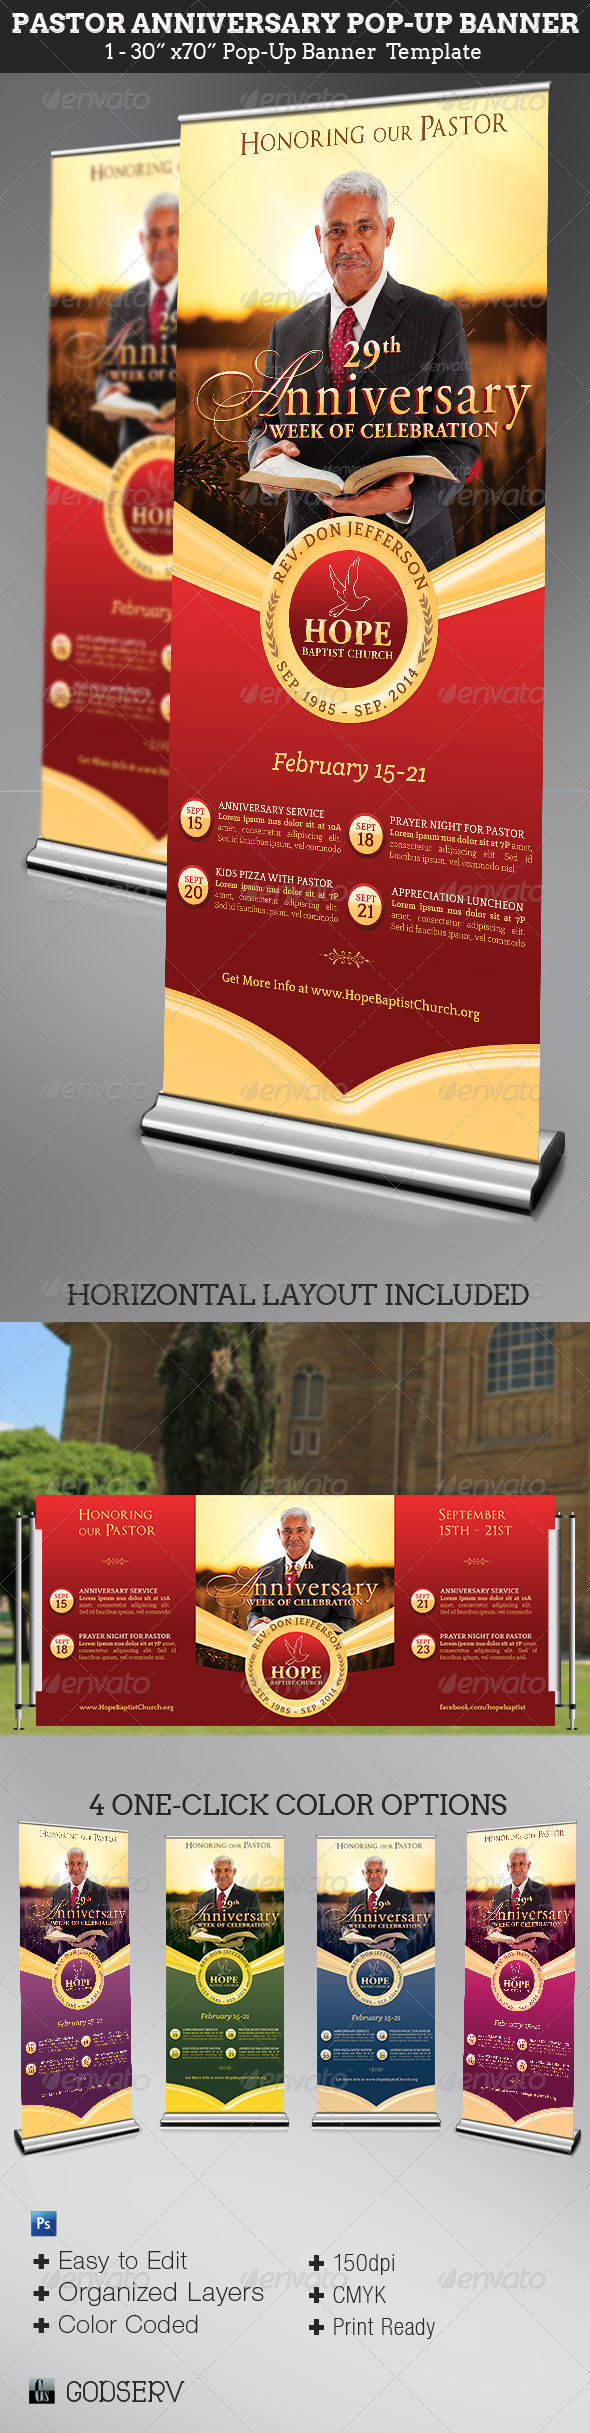 Pastor Anniversary Pop-Up Banner Template  - Signage Print Templates